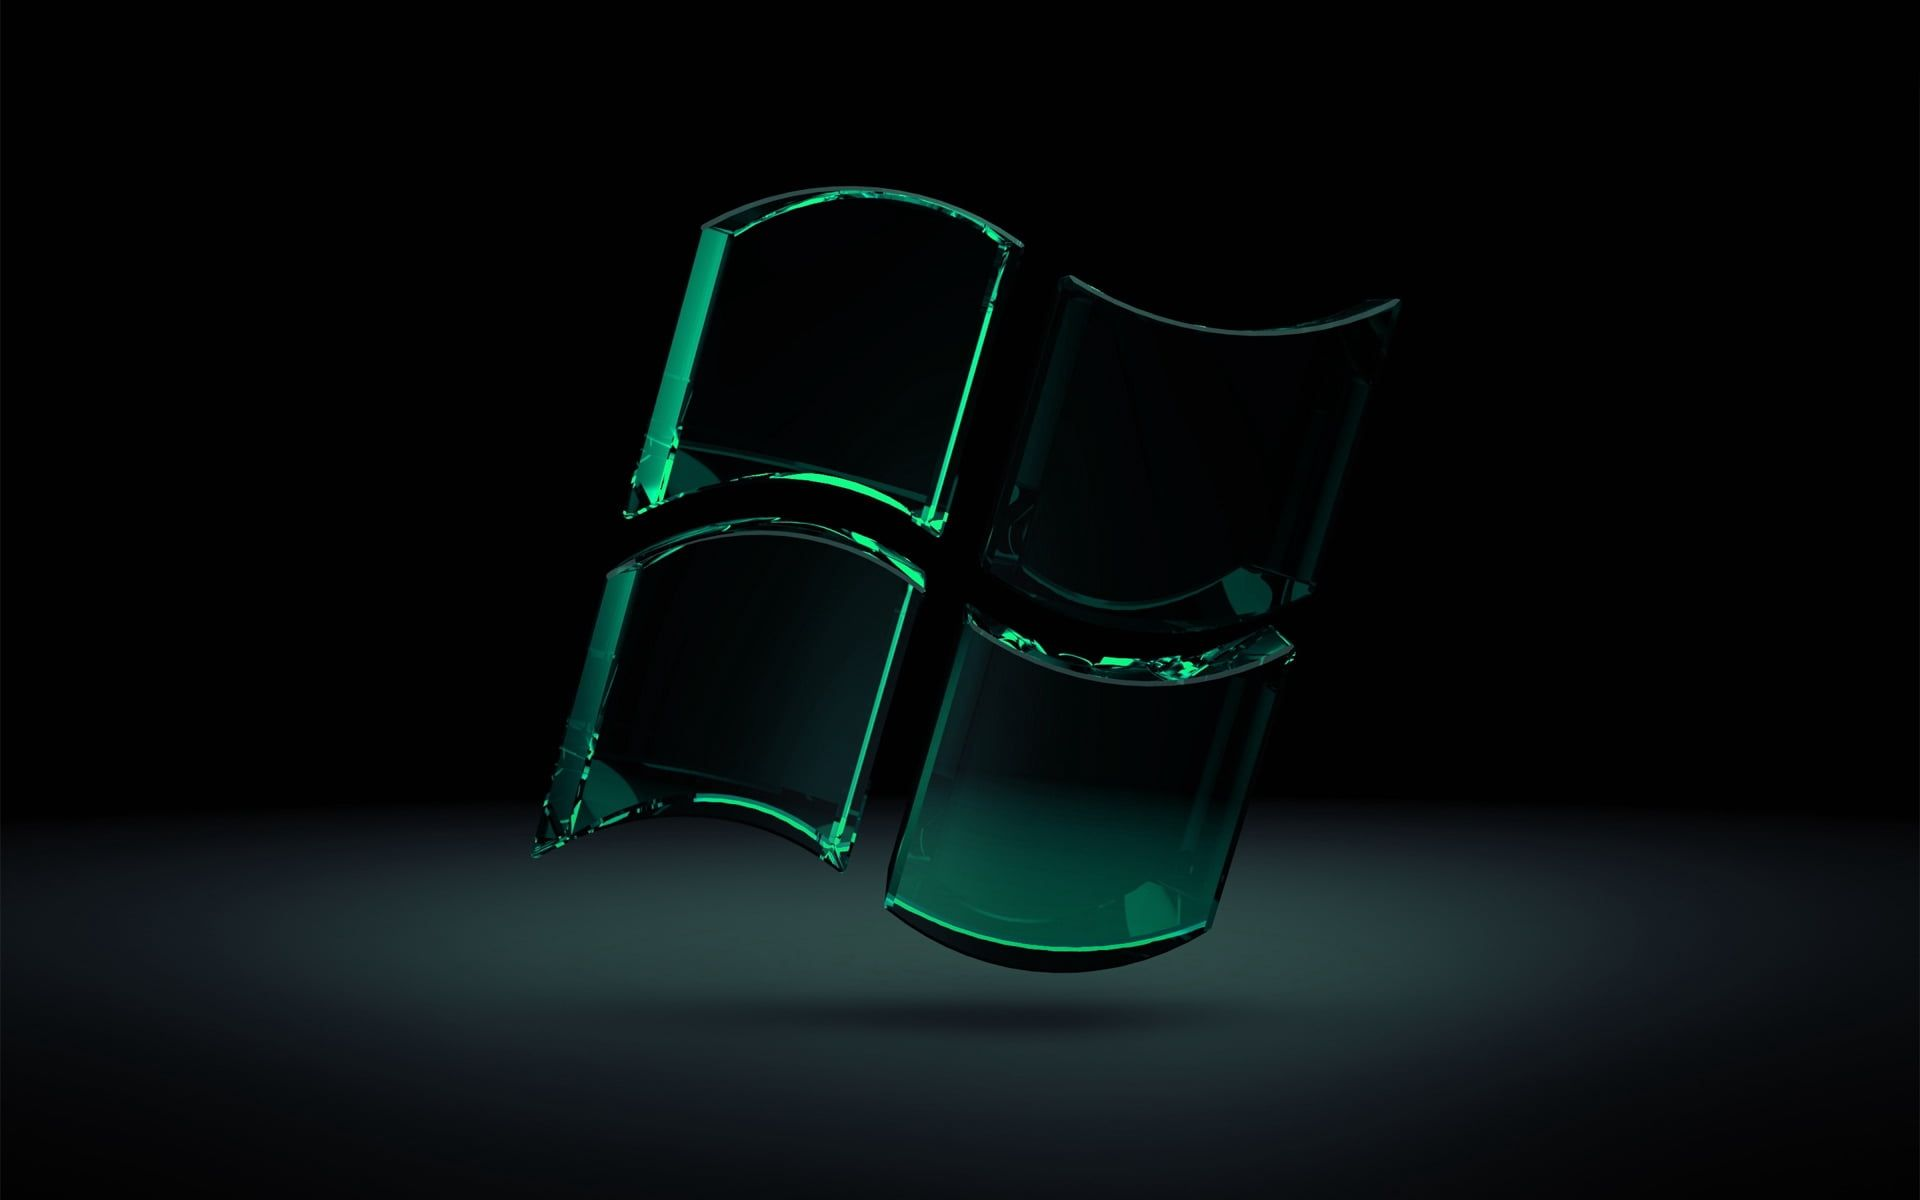 Green Microsoft Windows Glass Logo Digital Artwork Windows Green Black Glass 1080p Wallpaper In 2020 Windows Wallpaper Black Background Wallpaper Dark Wallpaper